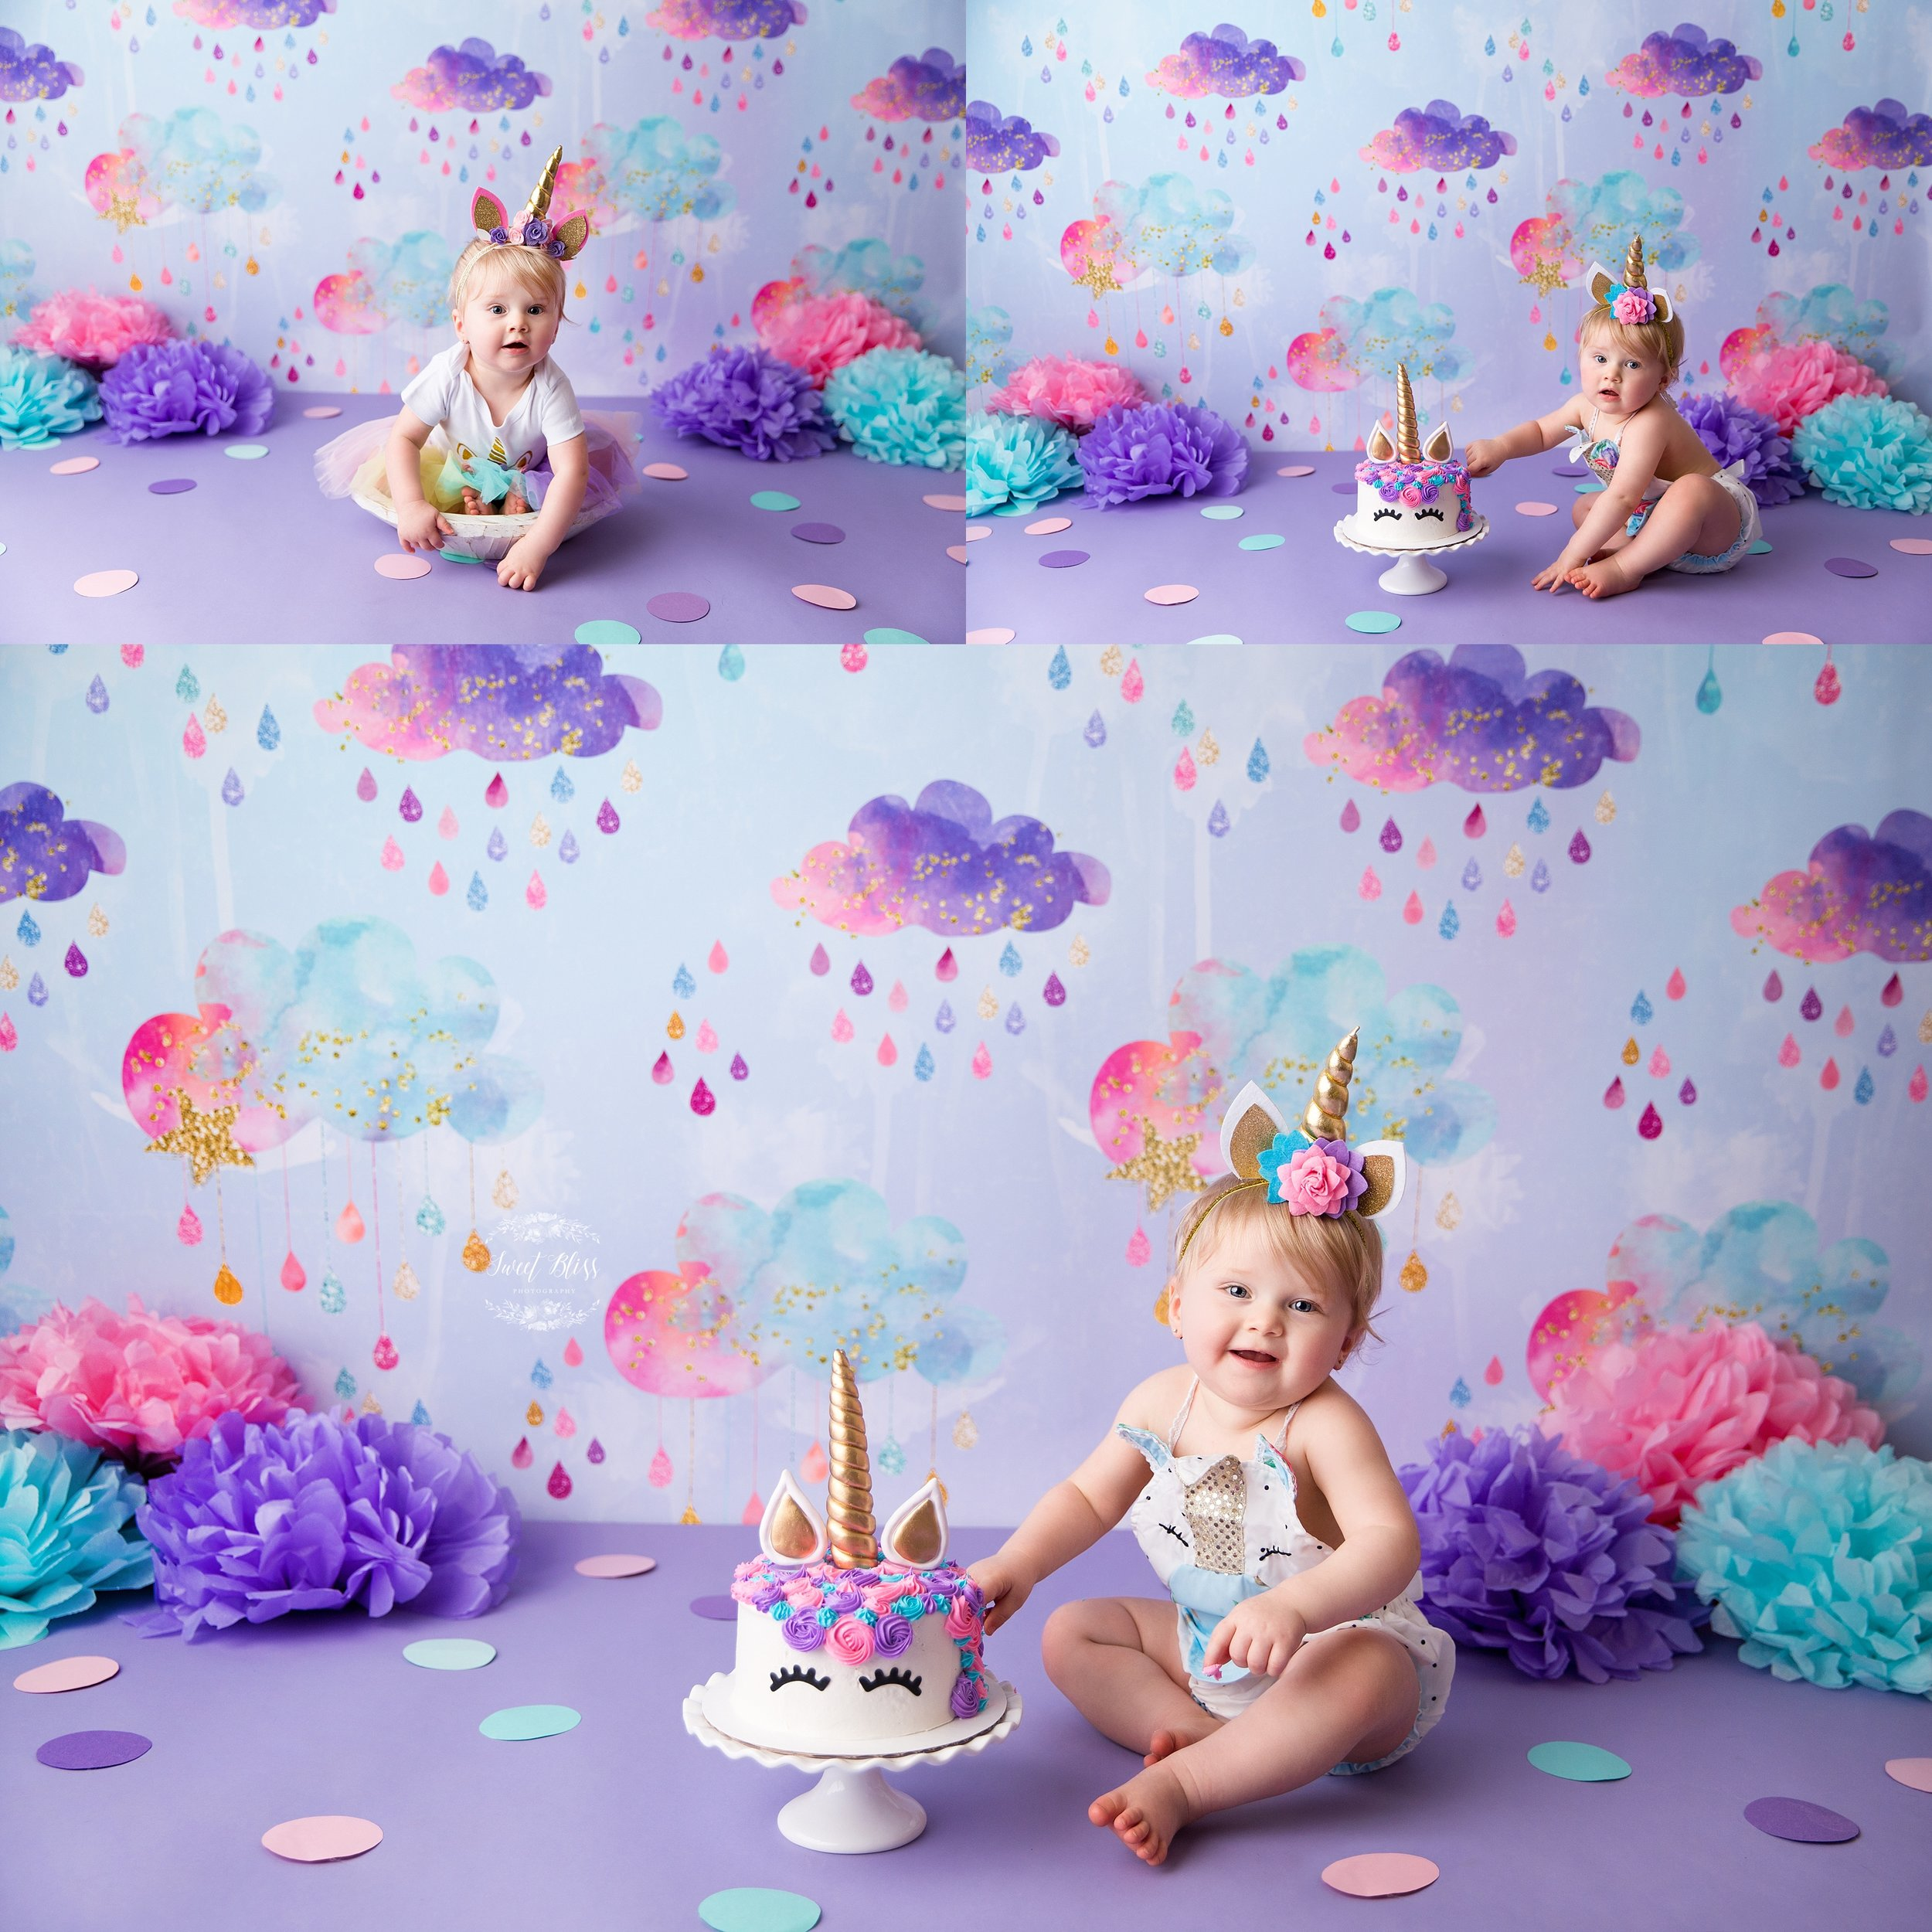 Sweetblissphotography_marylandcakesmash_01unicorn1_Baltimore unicorn Cake Smash.jpg